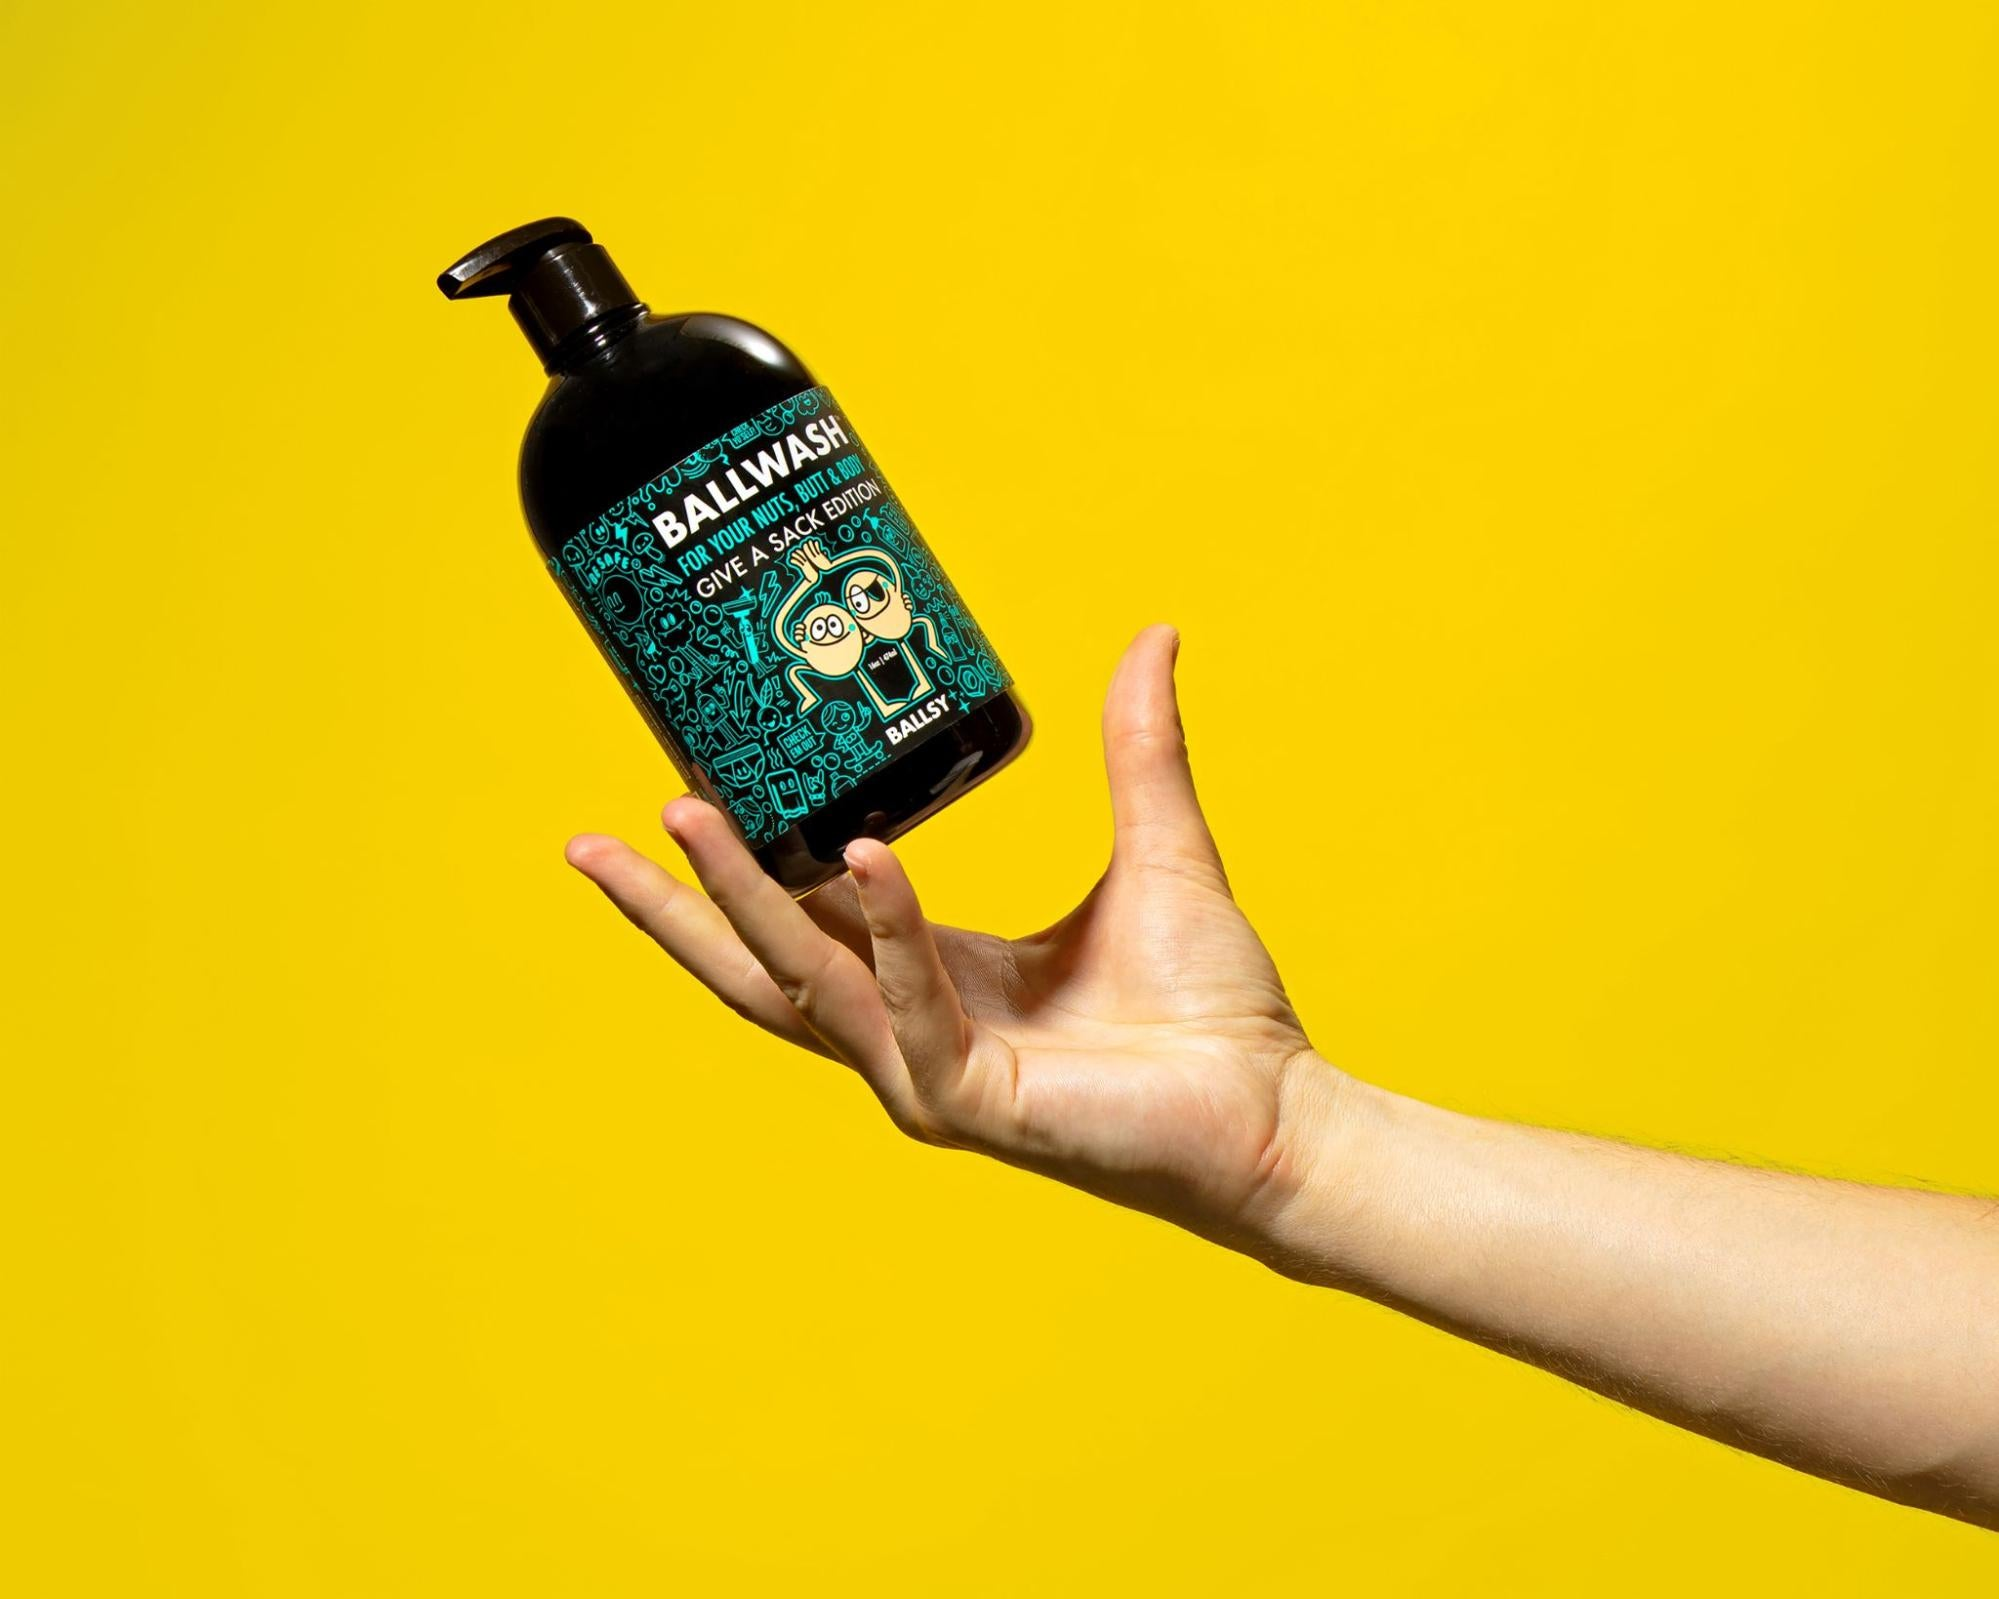 A bottle of Ballwash by Ballsy being caught my a hand model against a yellow background.